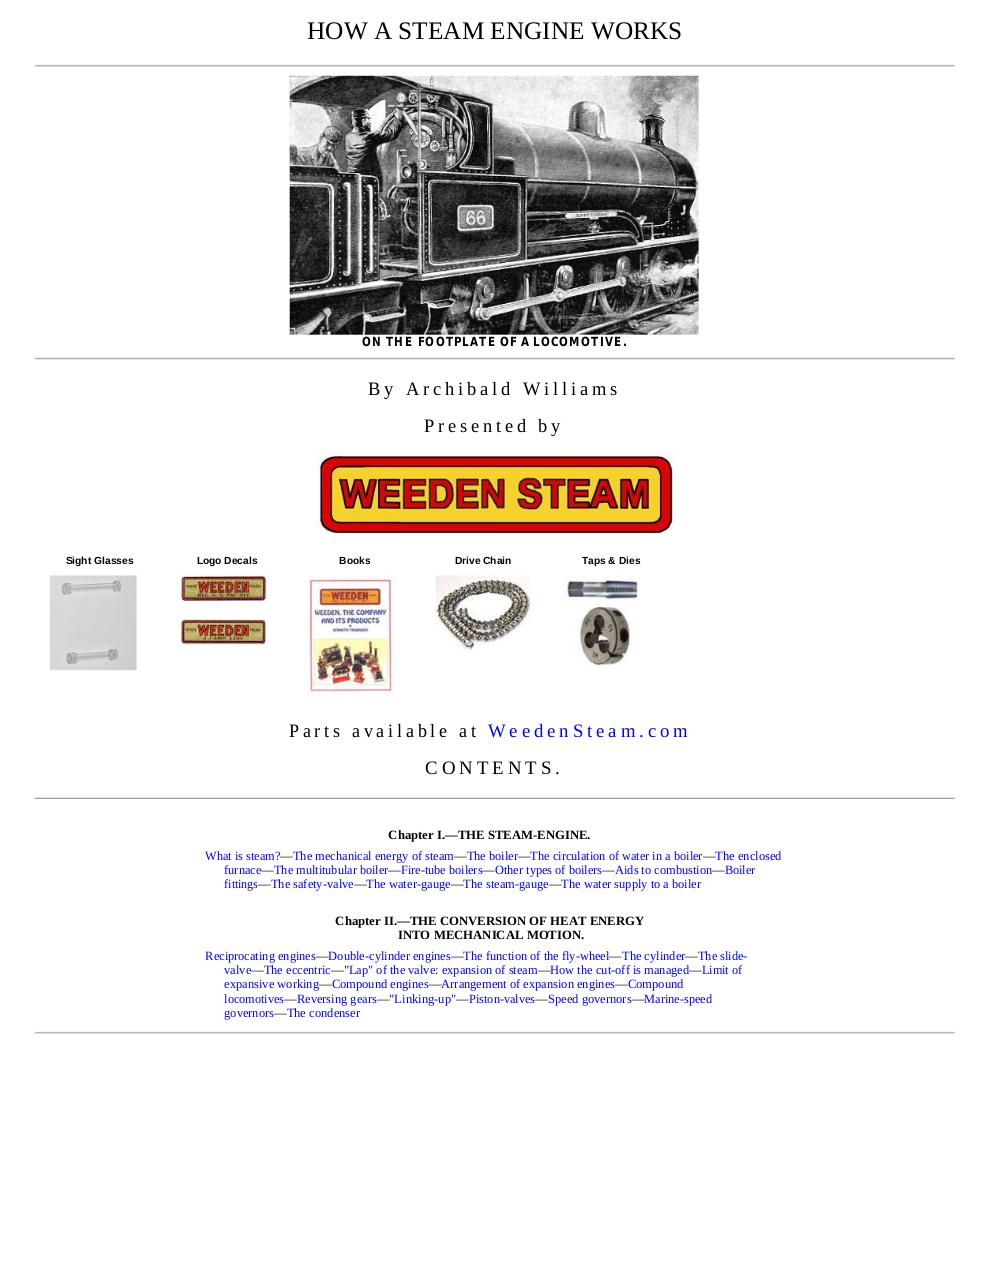 How A Steam Engine Works, by Archibald Williams